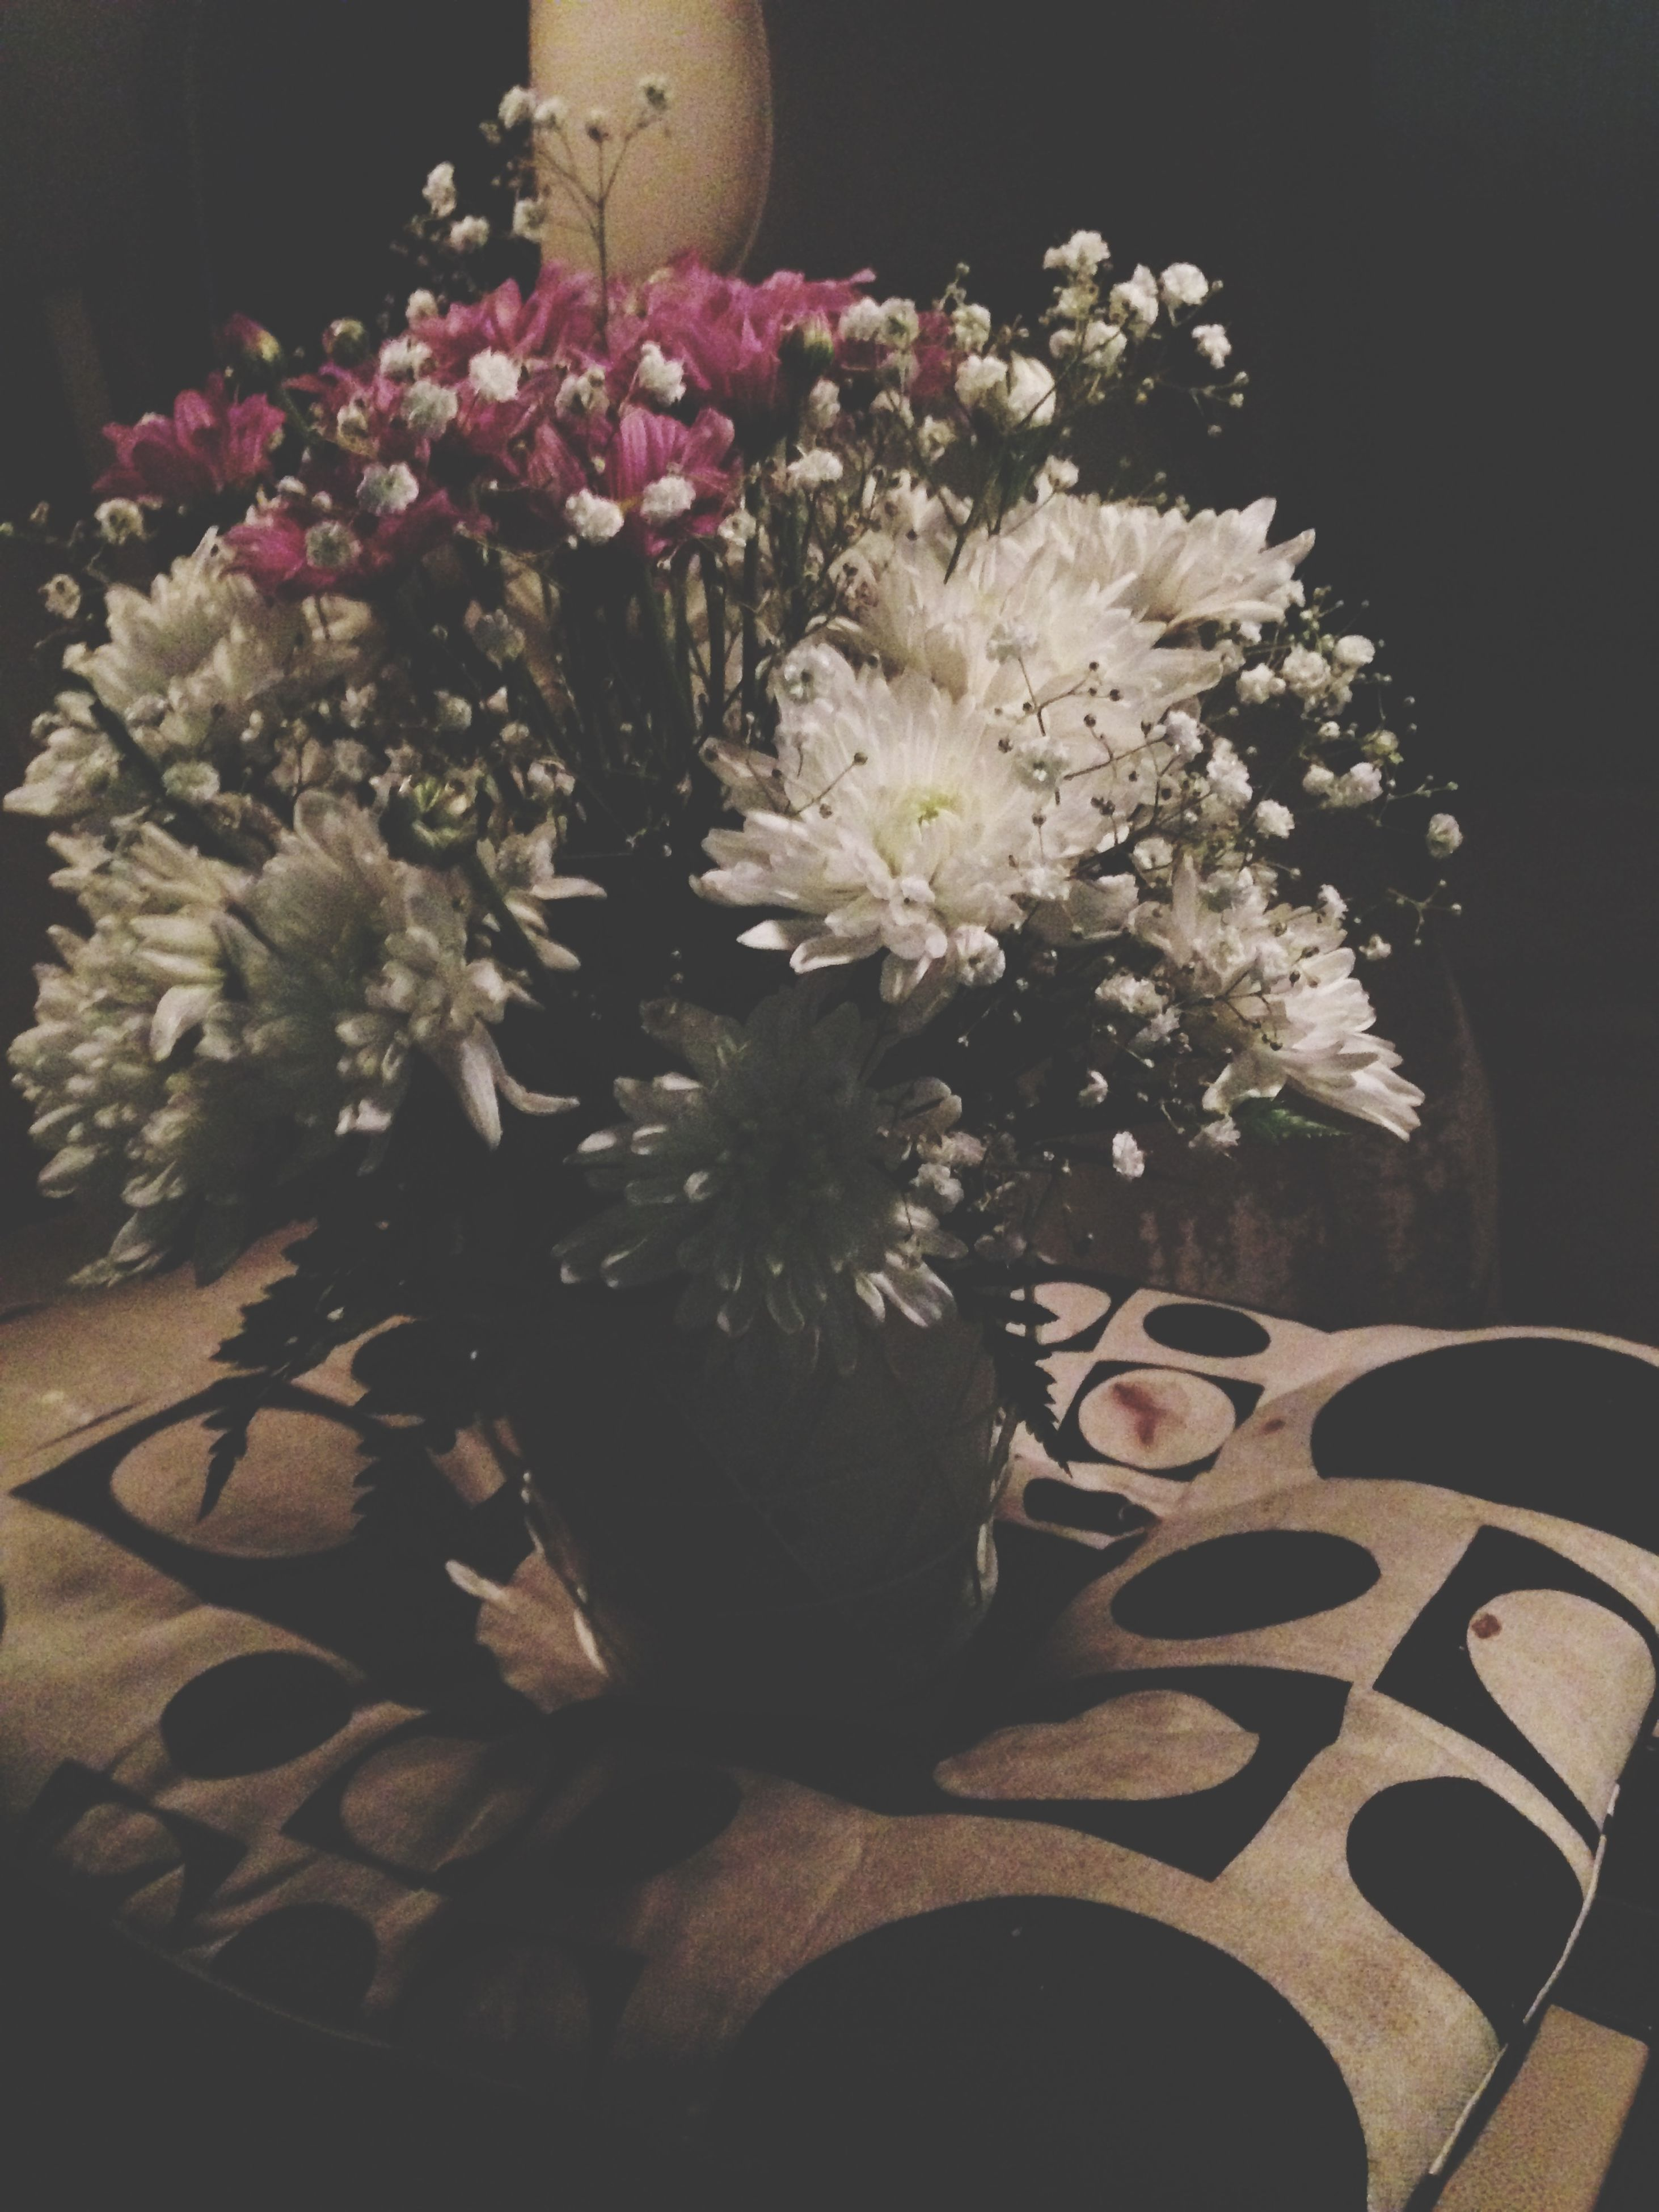 flower, indoors, petal, fragility, freshness, vase, flower head, growth, potted plant, decoration, plant, night, home interior, nature, blooming, high angle view, beauty in nature, bouquet, bunch of flowers, pink color